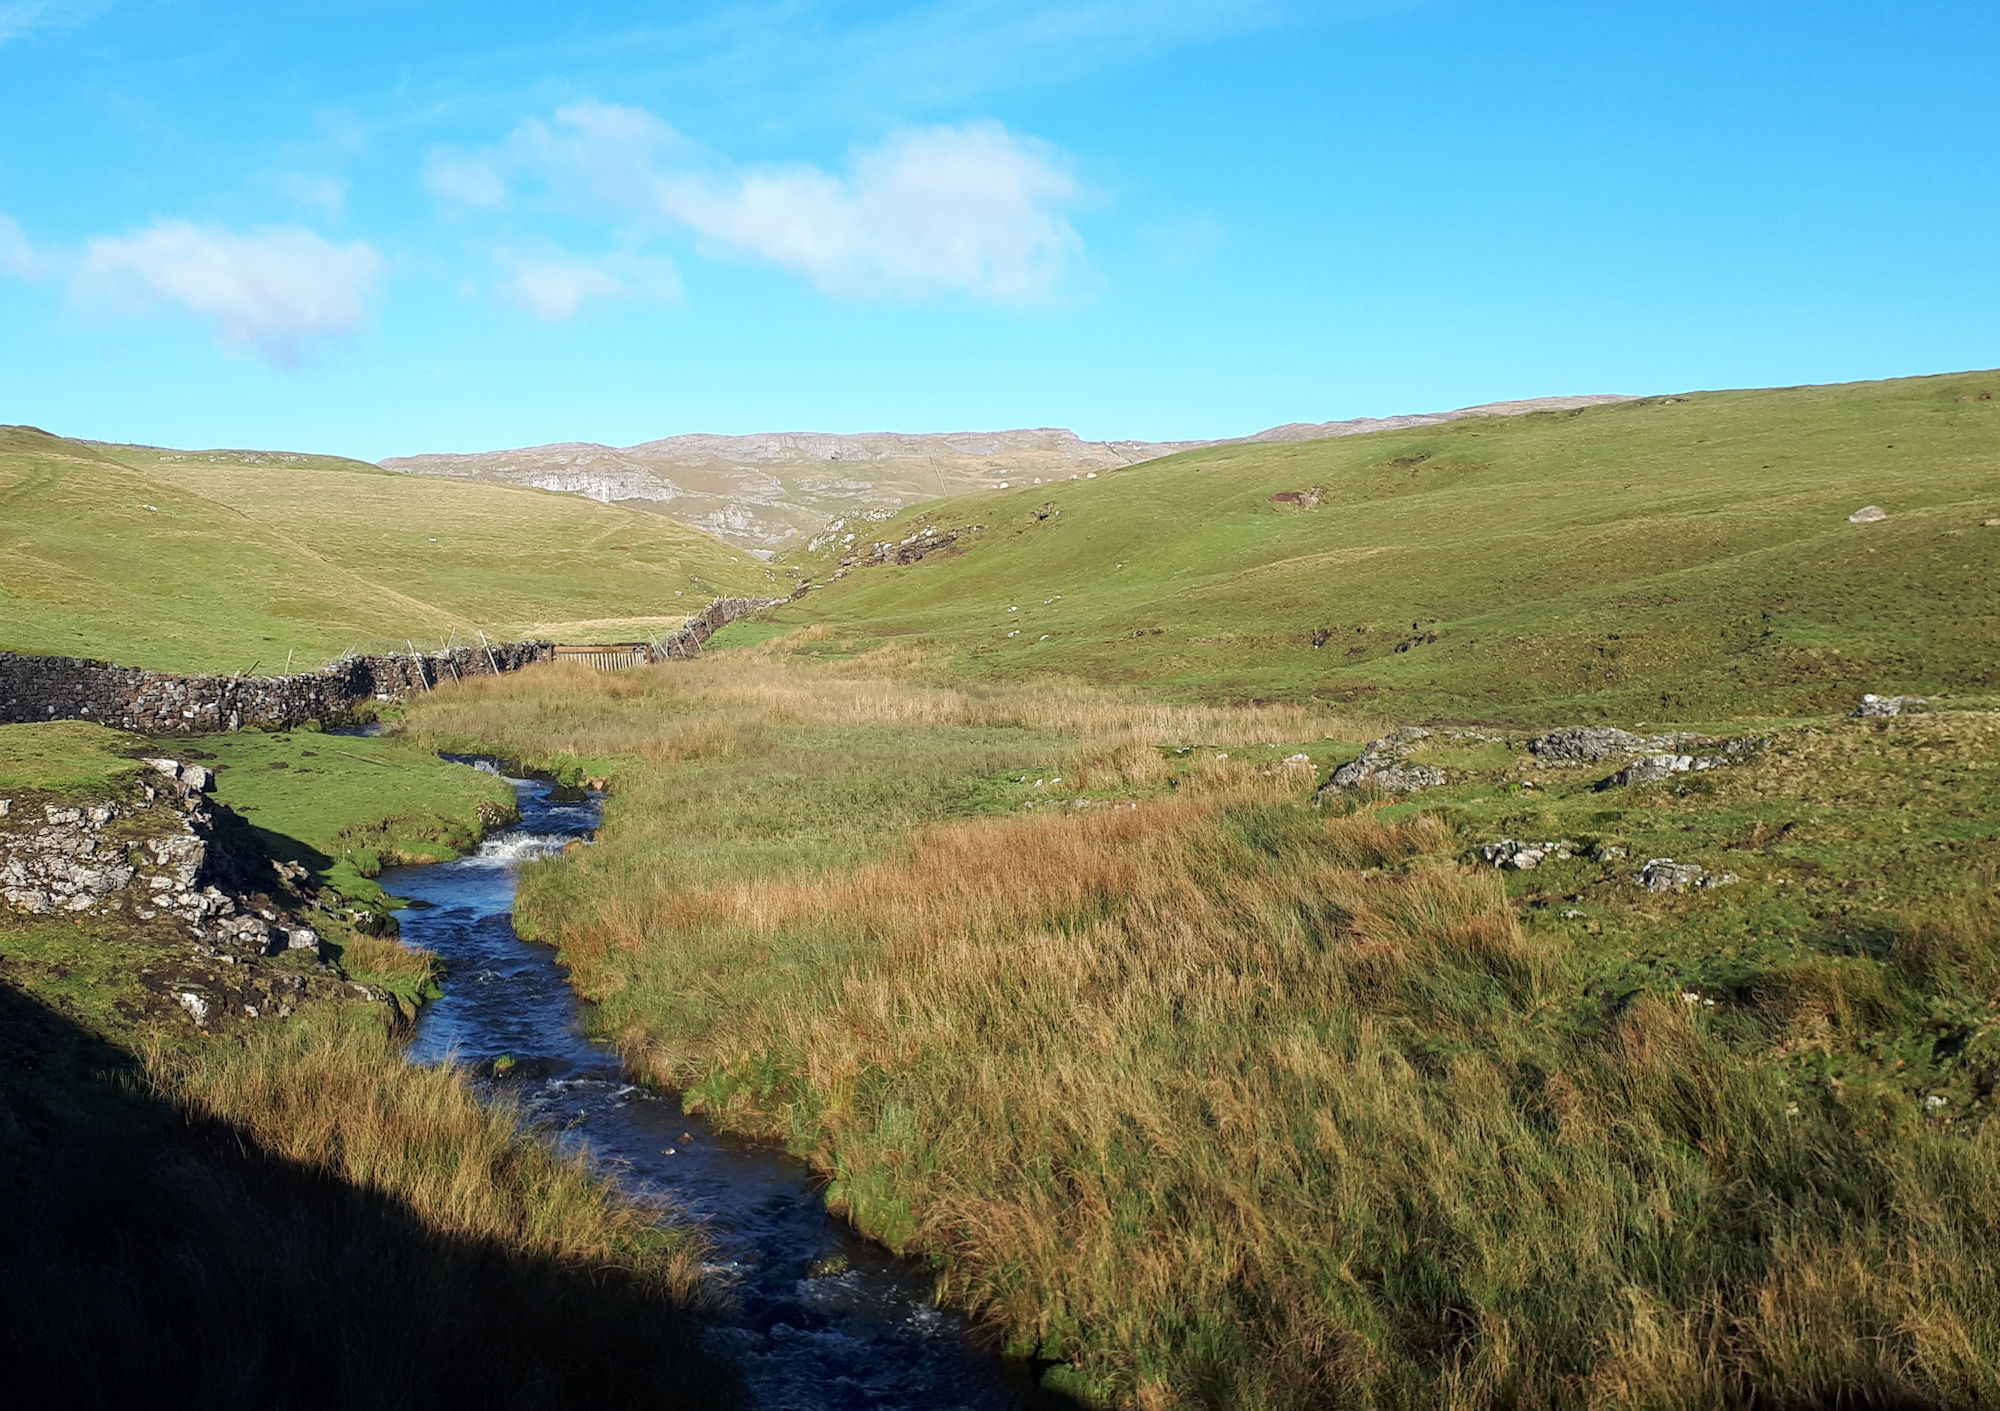 Attermire Scar and the Settle cliffs